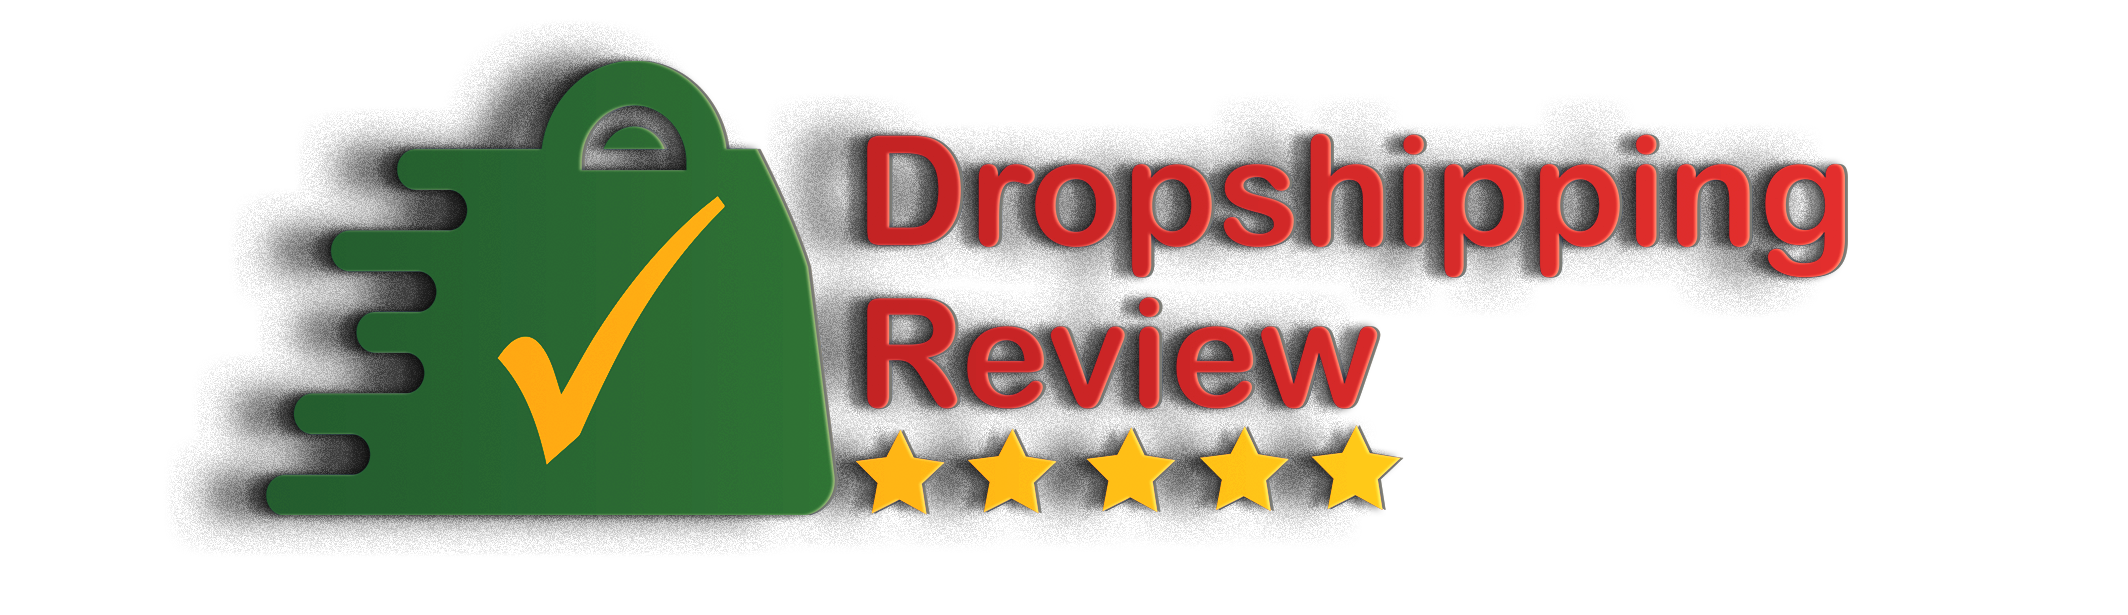 Dropshipping Reviews The Best Dropshipping Services